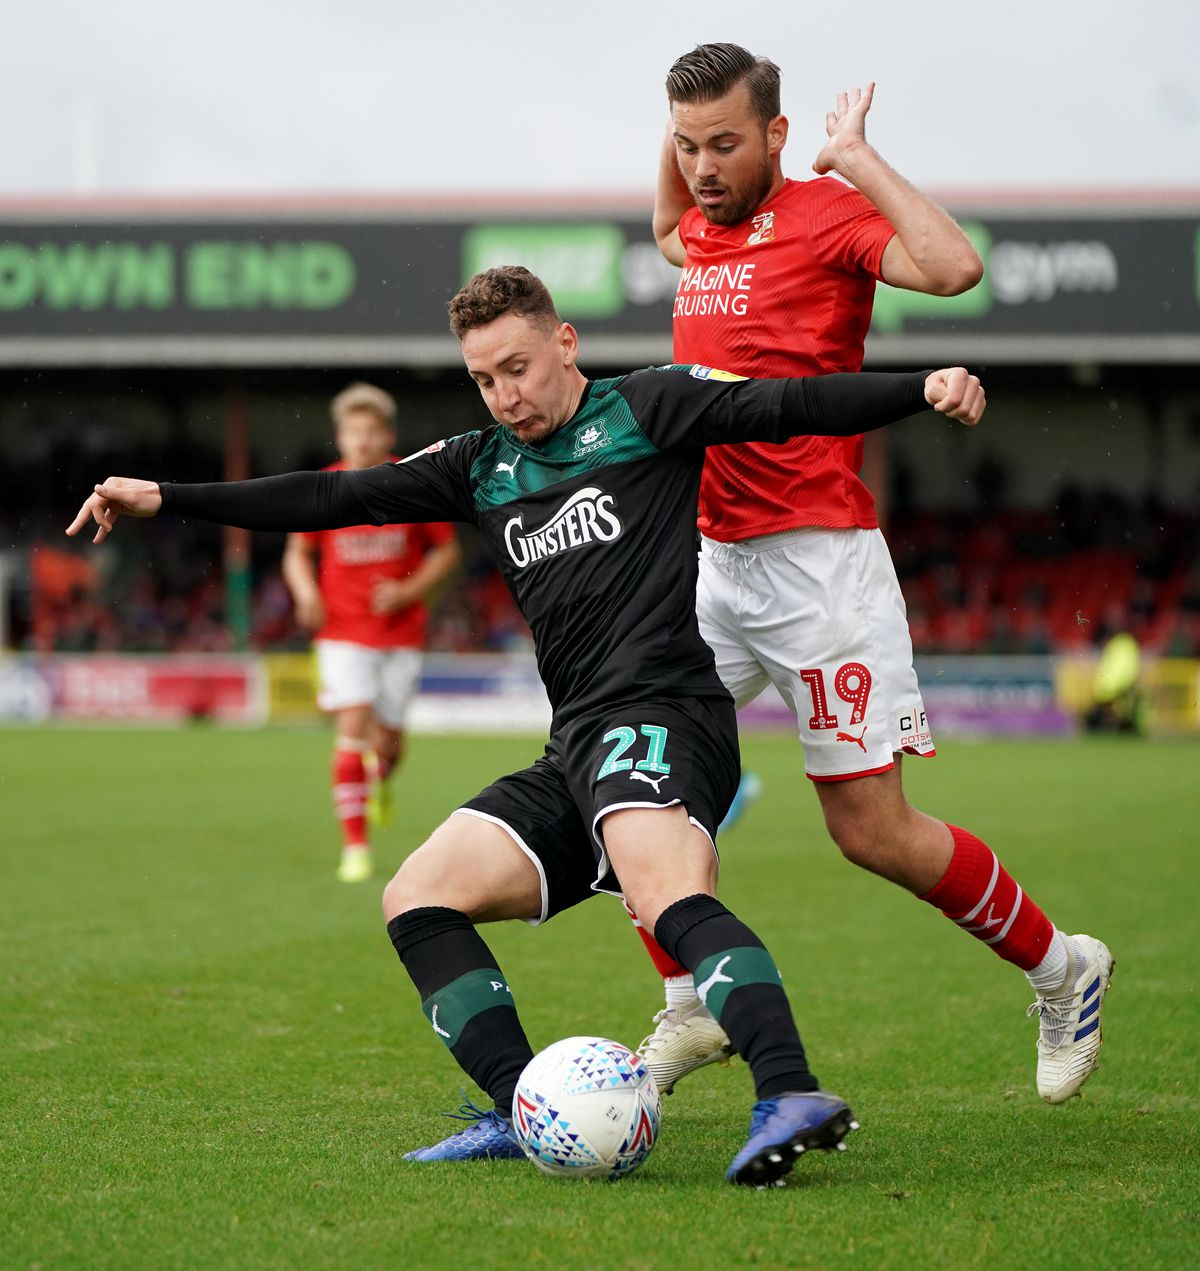 Swindon Town v Plymouth Argyle - Sky Bet League Two - The Energy Check County Ground